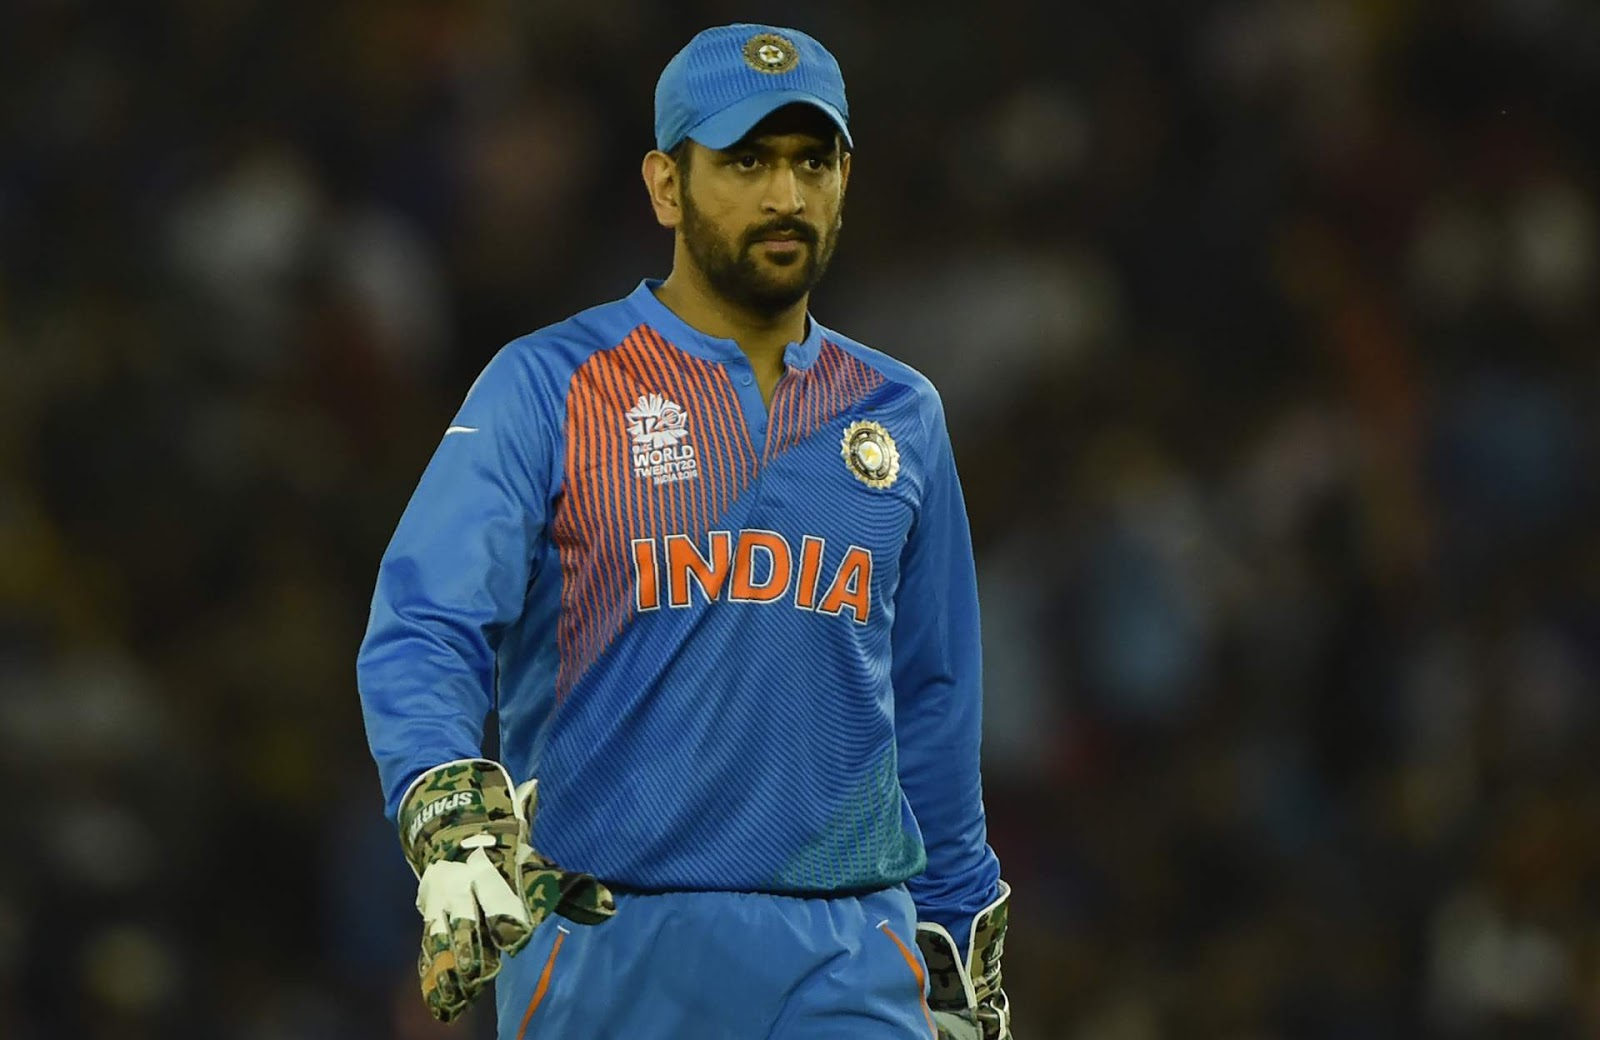 Top Ms Dhoni Full Hd Photos Images Pics And Wallpapers Top Free Hd Wallpapers